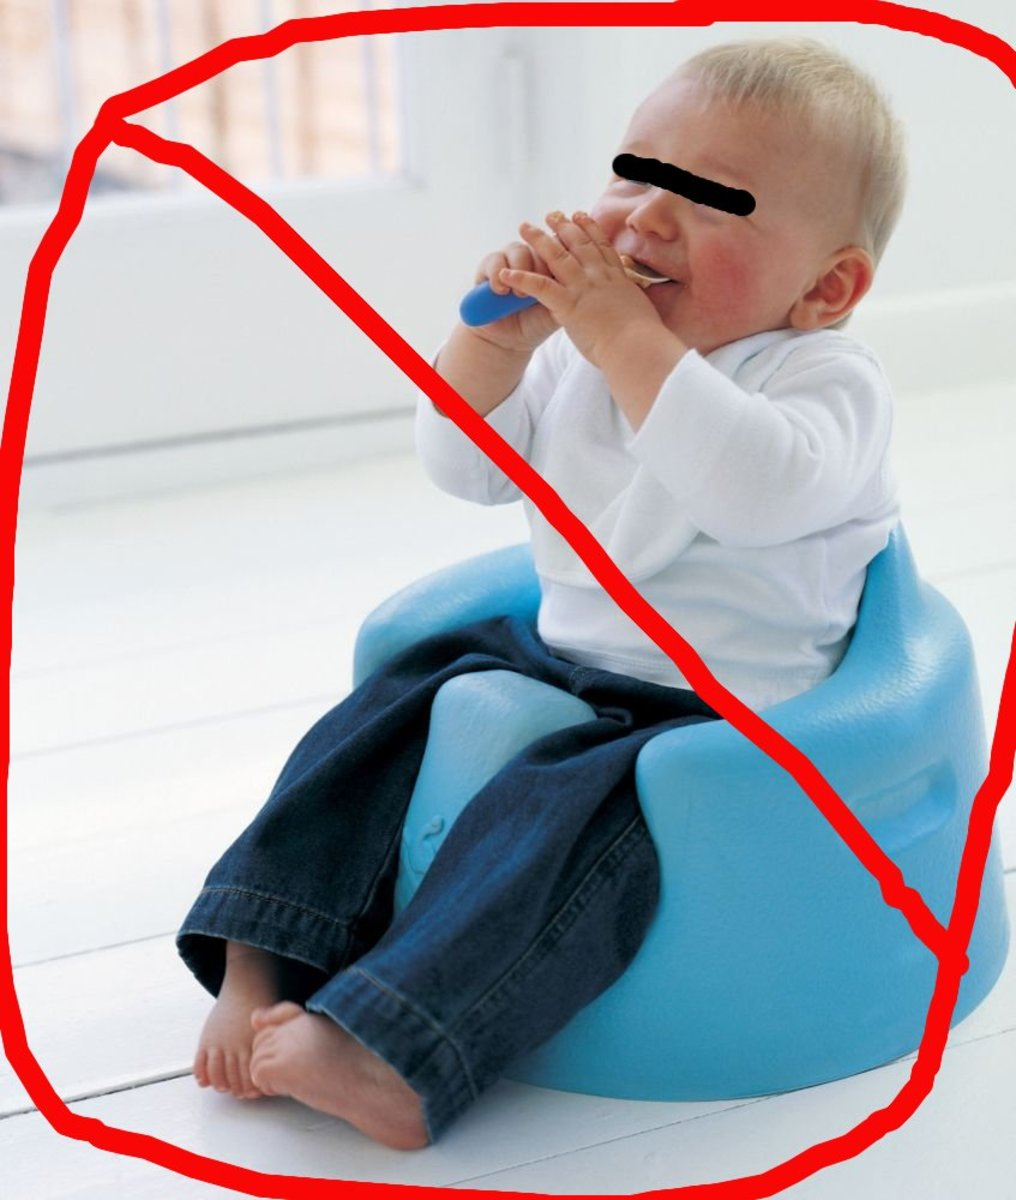 Bumbo Chair Recall Bumbo Recall Baby Chair Seat Is Not A Baby Sitter Hubpages